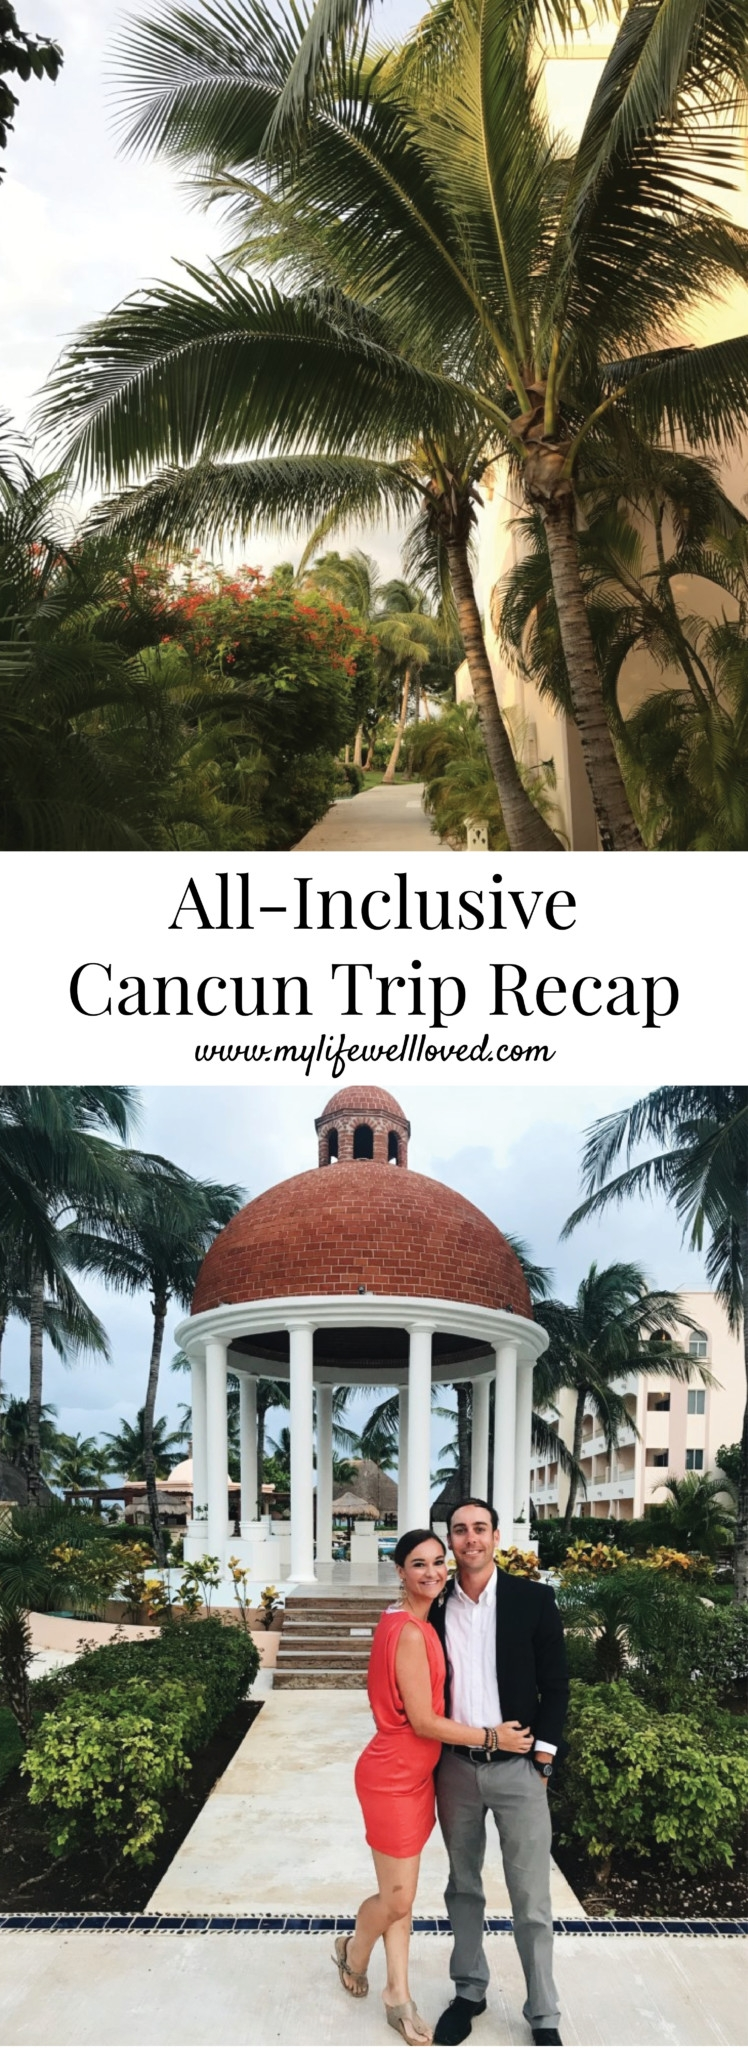 All-Inclusive Cancun Trip REcap by Alabama Blogger Heather Brown // travel // marriage // beach